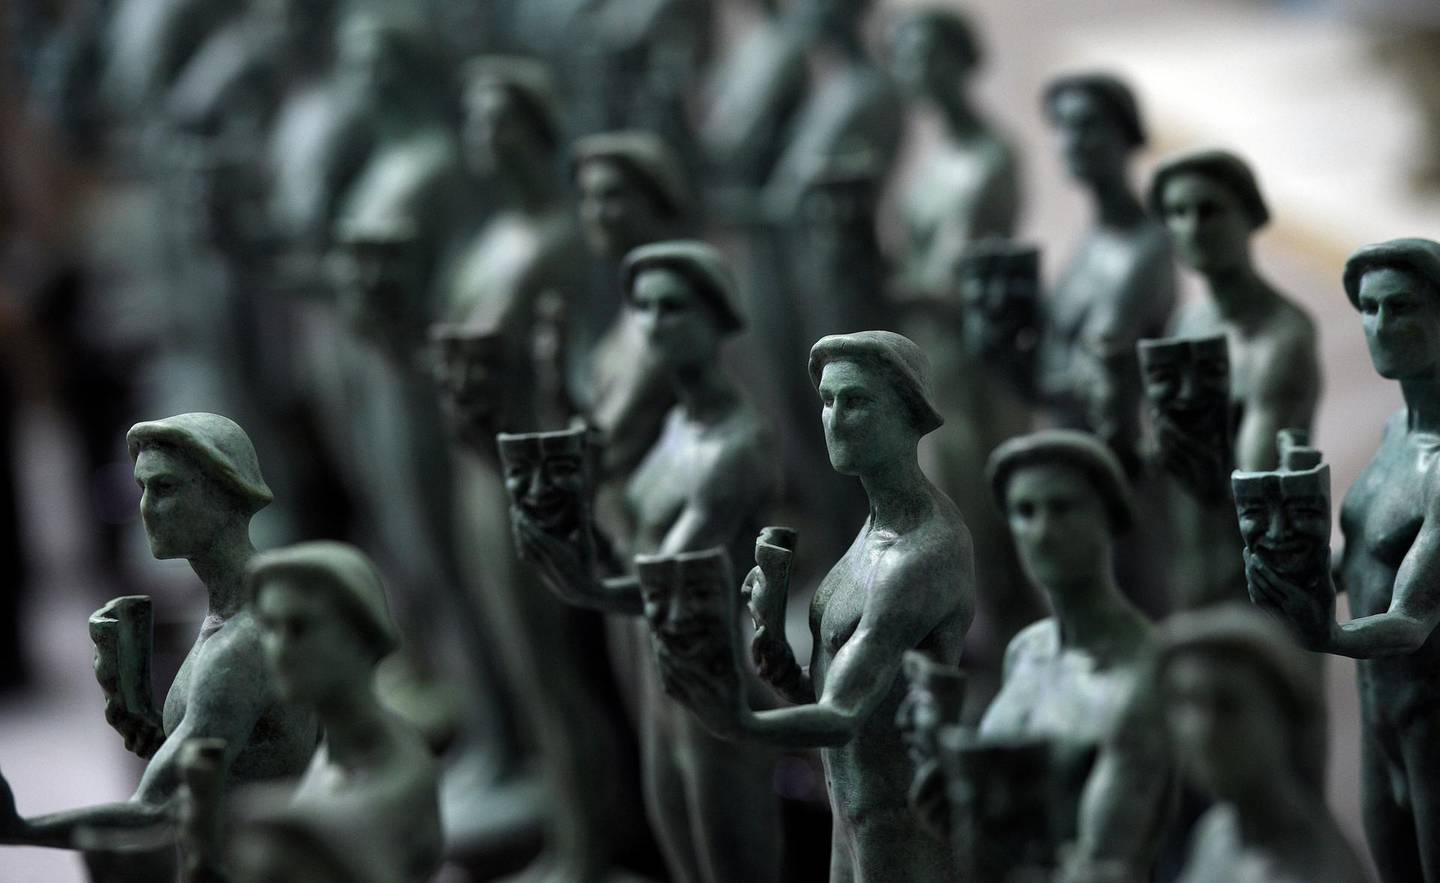 FILE - Finished Actor statuettes are displayed during the 25th annual Casting of the Screen Actors Guild Awards at American Fine Arts Foundry on Jan. 15, 2019, in Burbank, Calif. The SAG Awards announced Wednesday, Jan. 13, 2021, that the 27th annual ceremony has been moved to April 4. The awards had been originally scheduled to air March 14, but shifted to a different date to avoid conflict with the Grammys. (Photo by Chris Pizzello/Invision/AP, File)